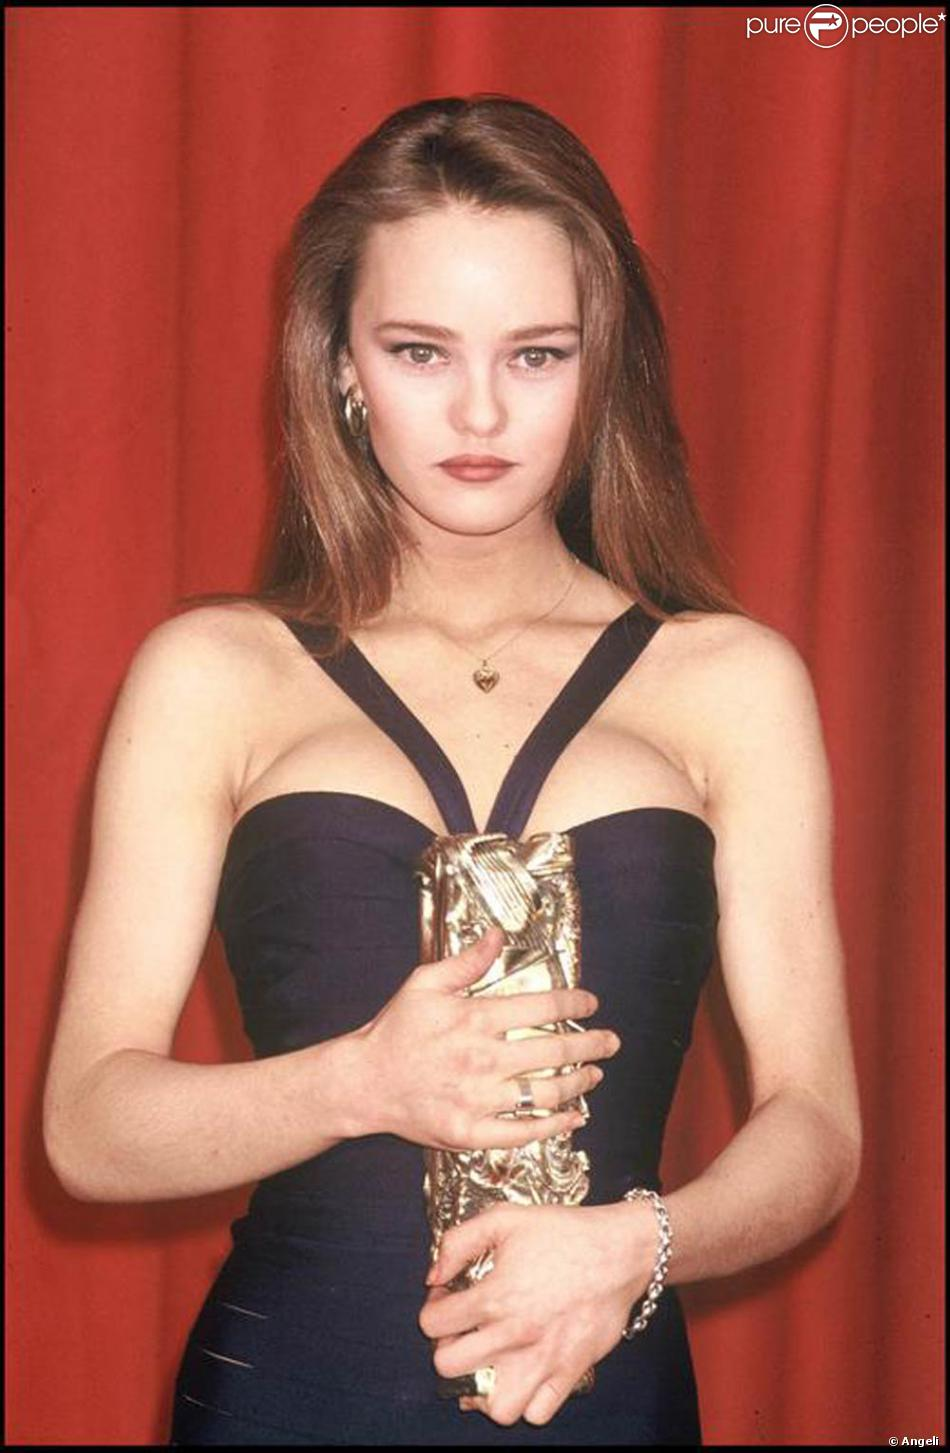 vanessa paradis lors de la c r monie des c sars en 1990 purepeople. Black Bedroom Furniture Sets. Home Design Ideas